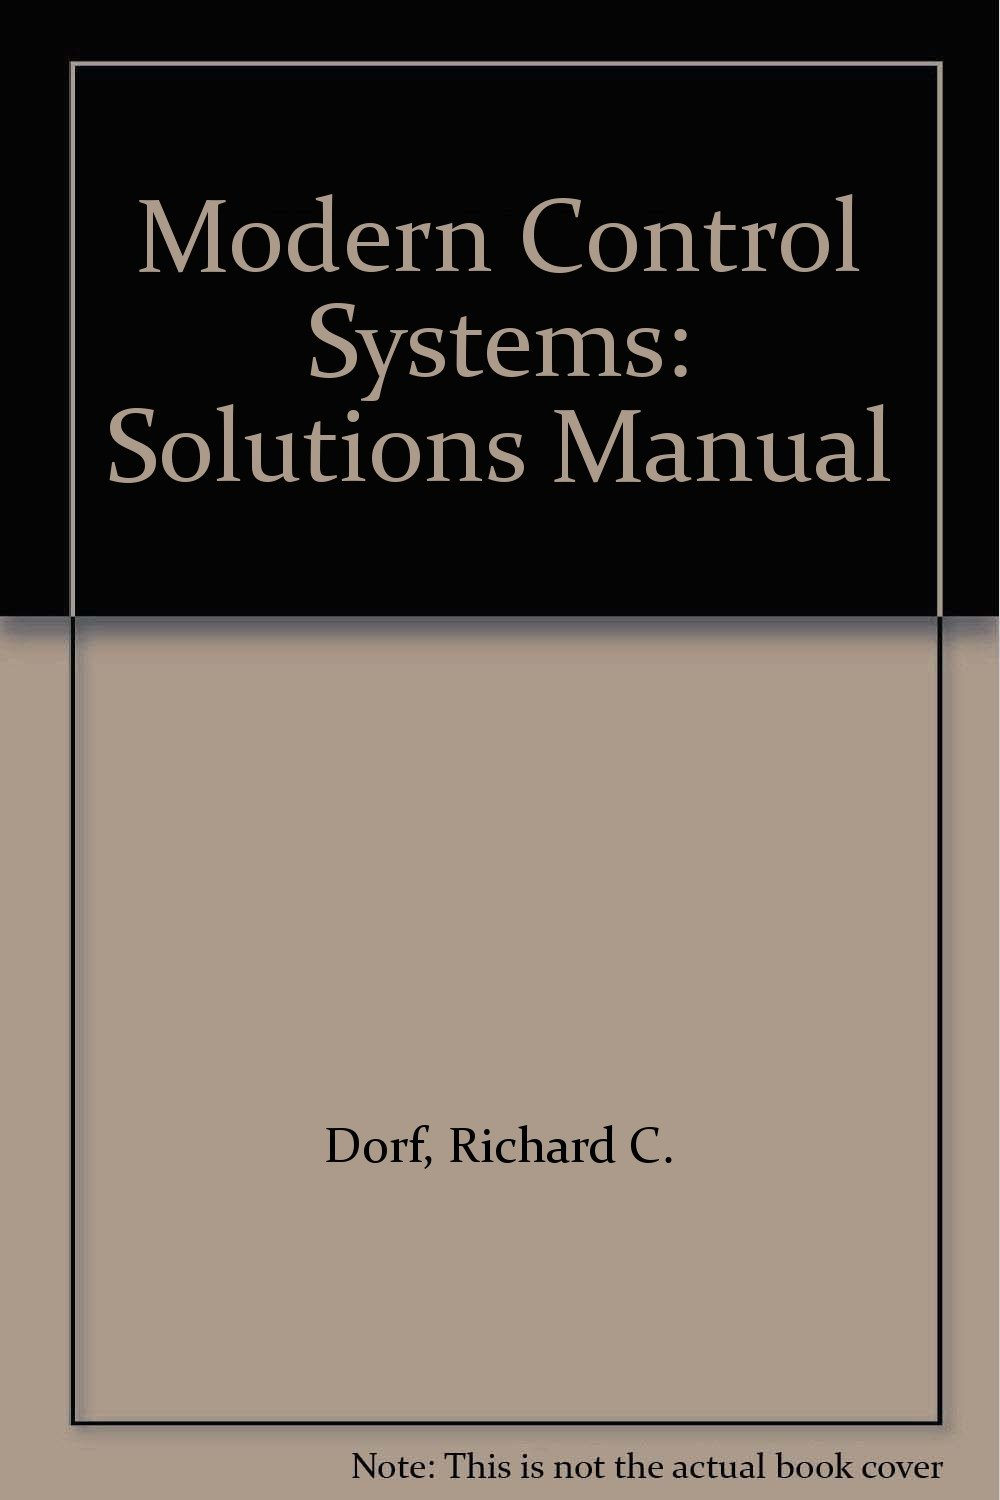 Modern Control Systems: Solutions Manual: Richard C. Dorf, Robert H.  Bishop: 9780131457270: Amazon.com: Books